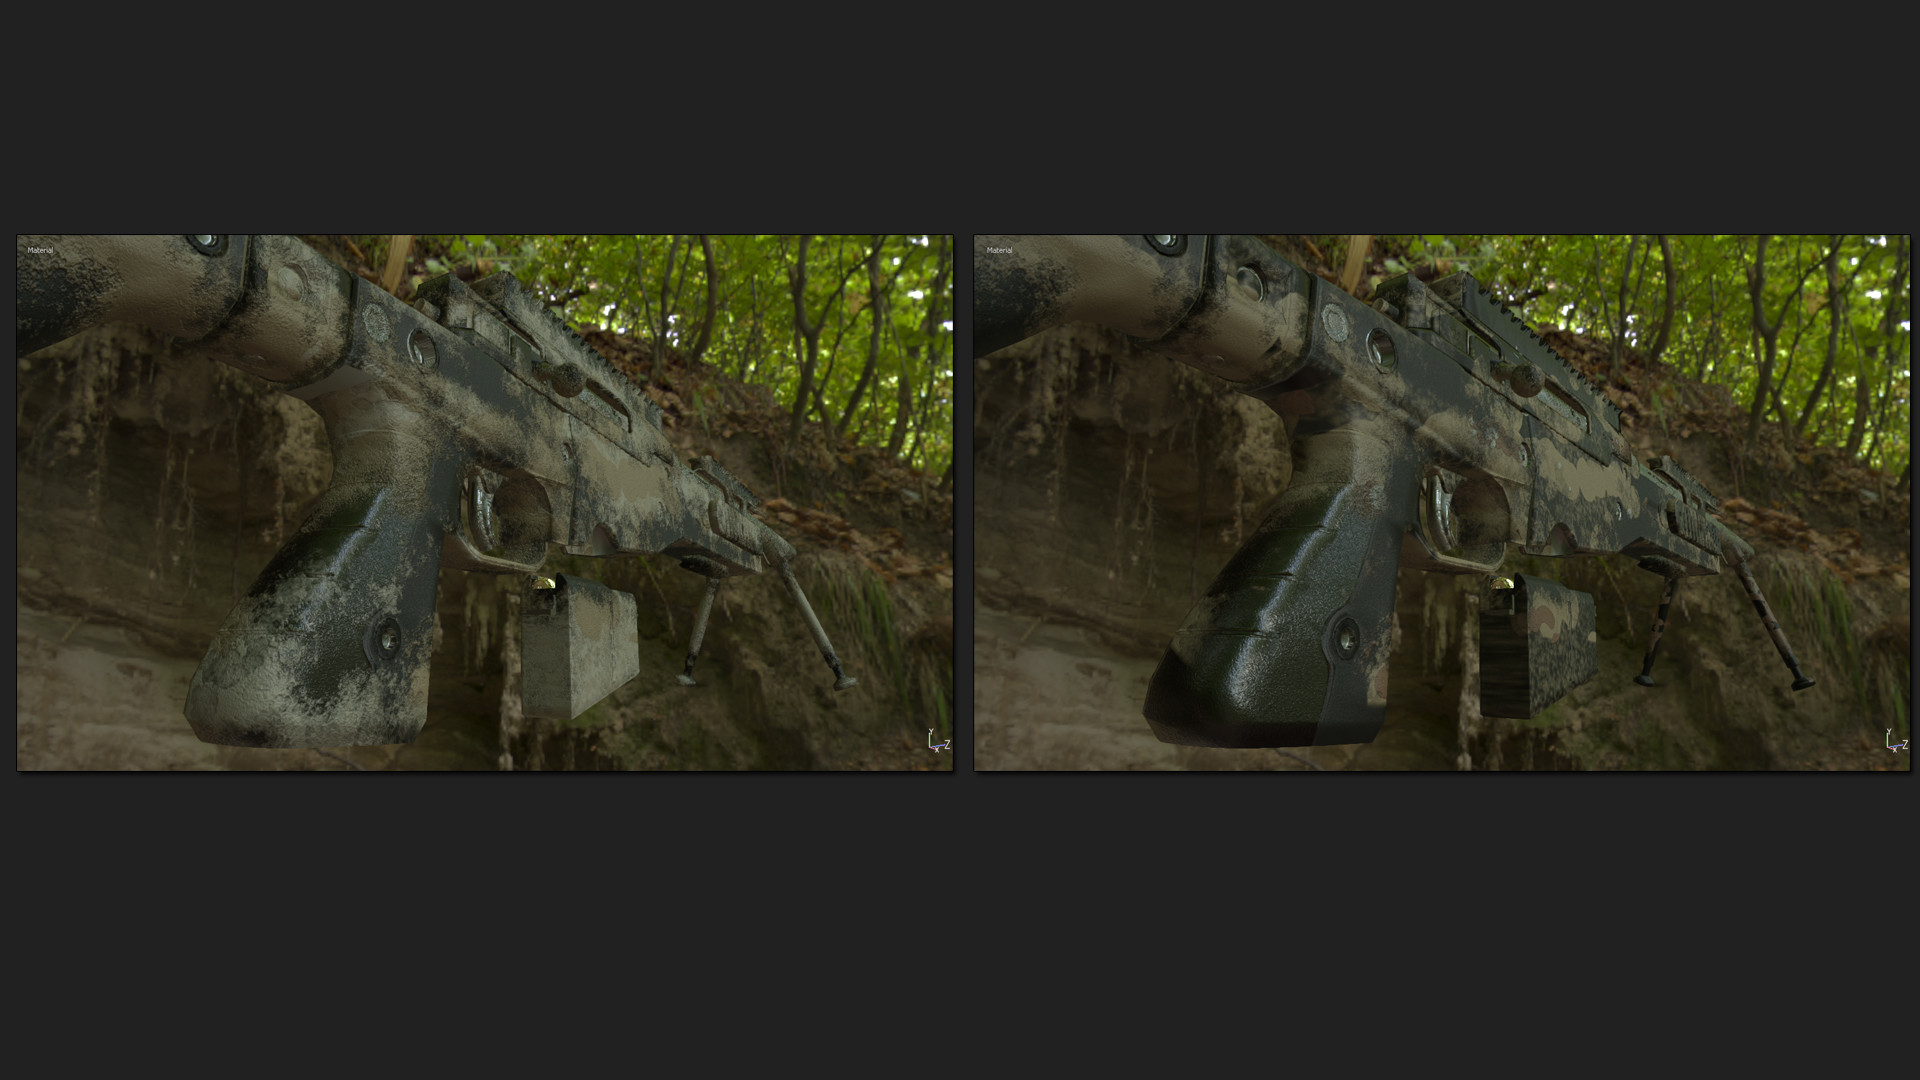 ArtStation - AT  308 - 7 62x51 Sniper Rifle 4k Map - Unreal Engine 4